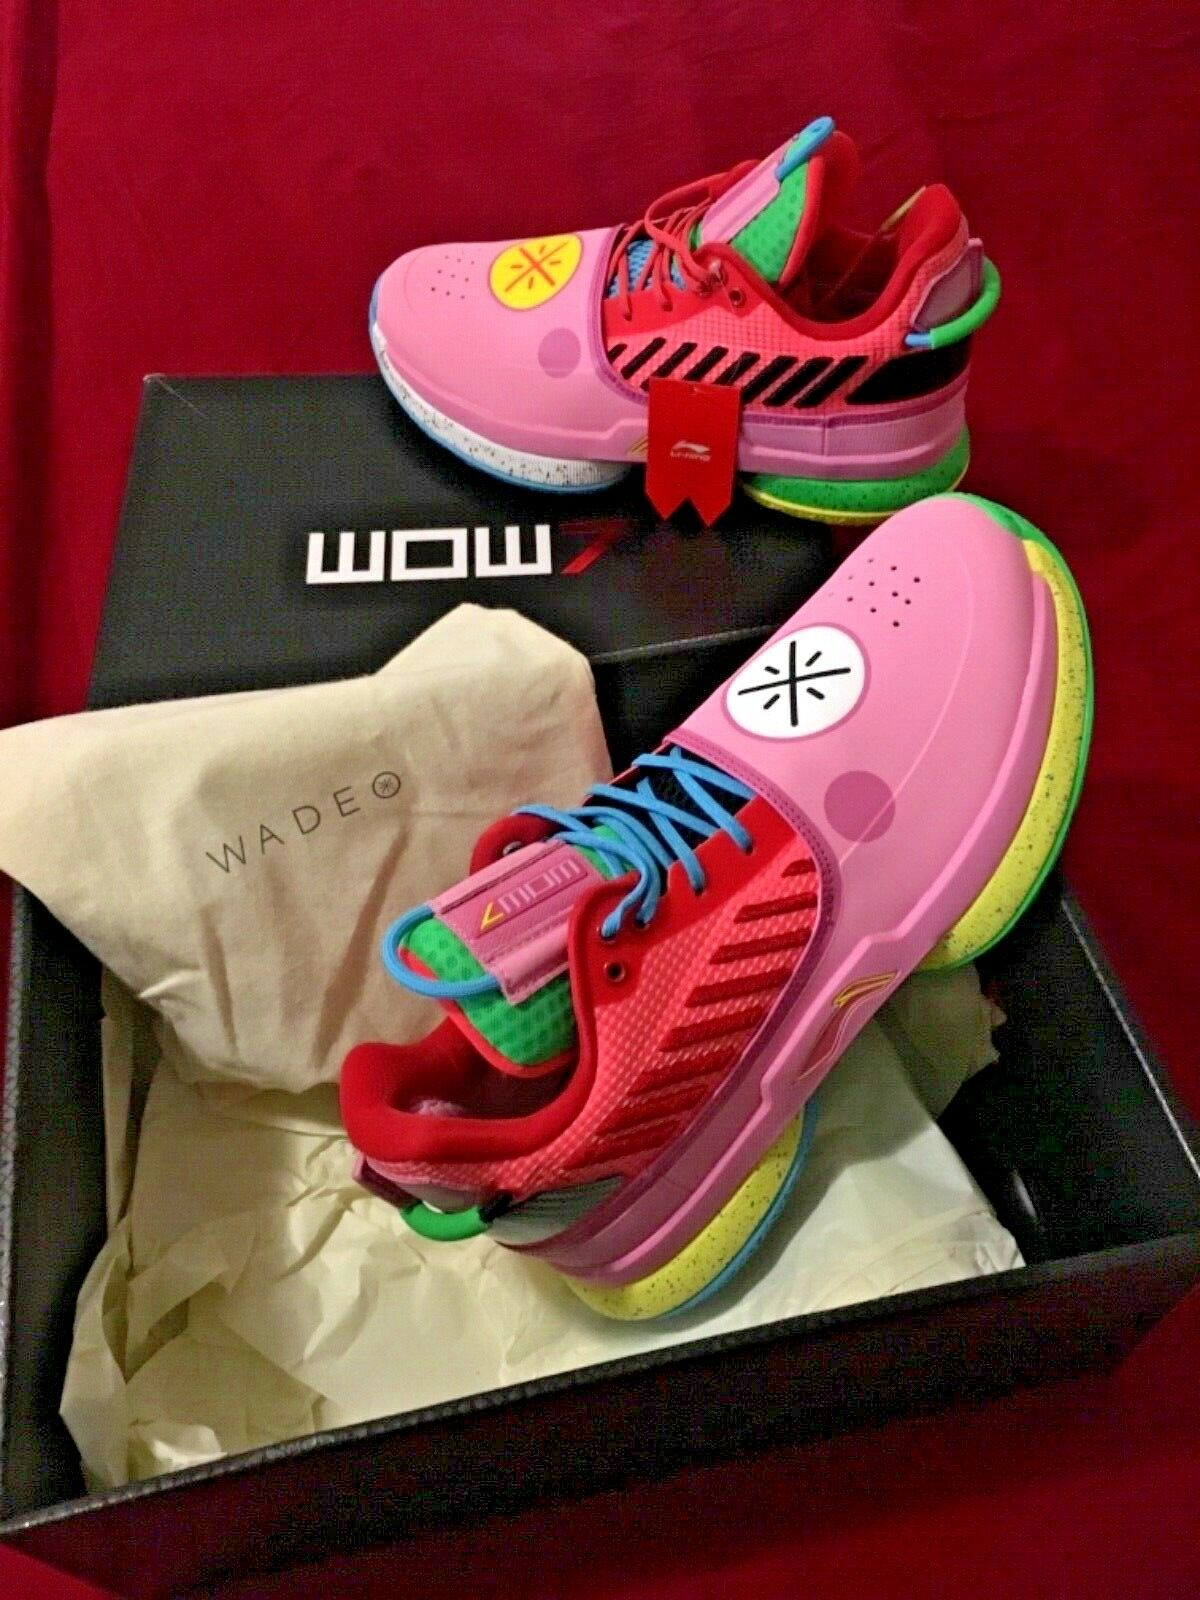 Way of Wade 7 Year of le cochon  - Limited Edition Brand nouveau US Taille 8.5 - WOW7